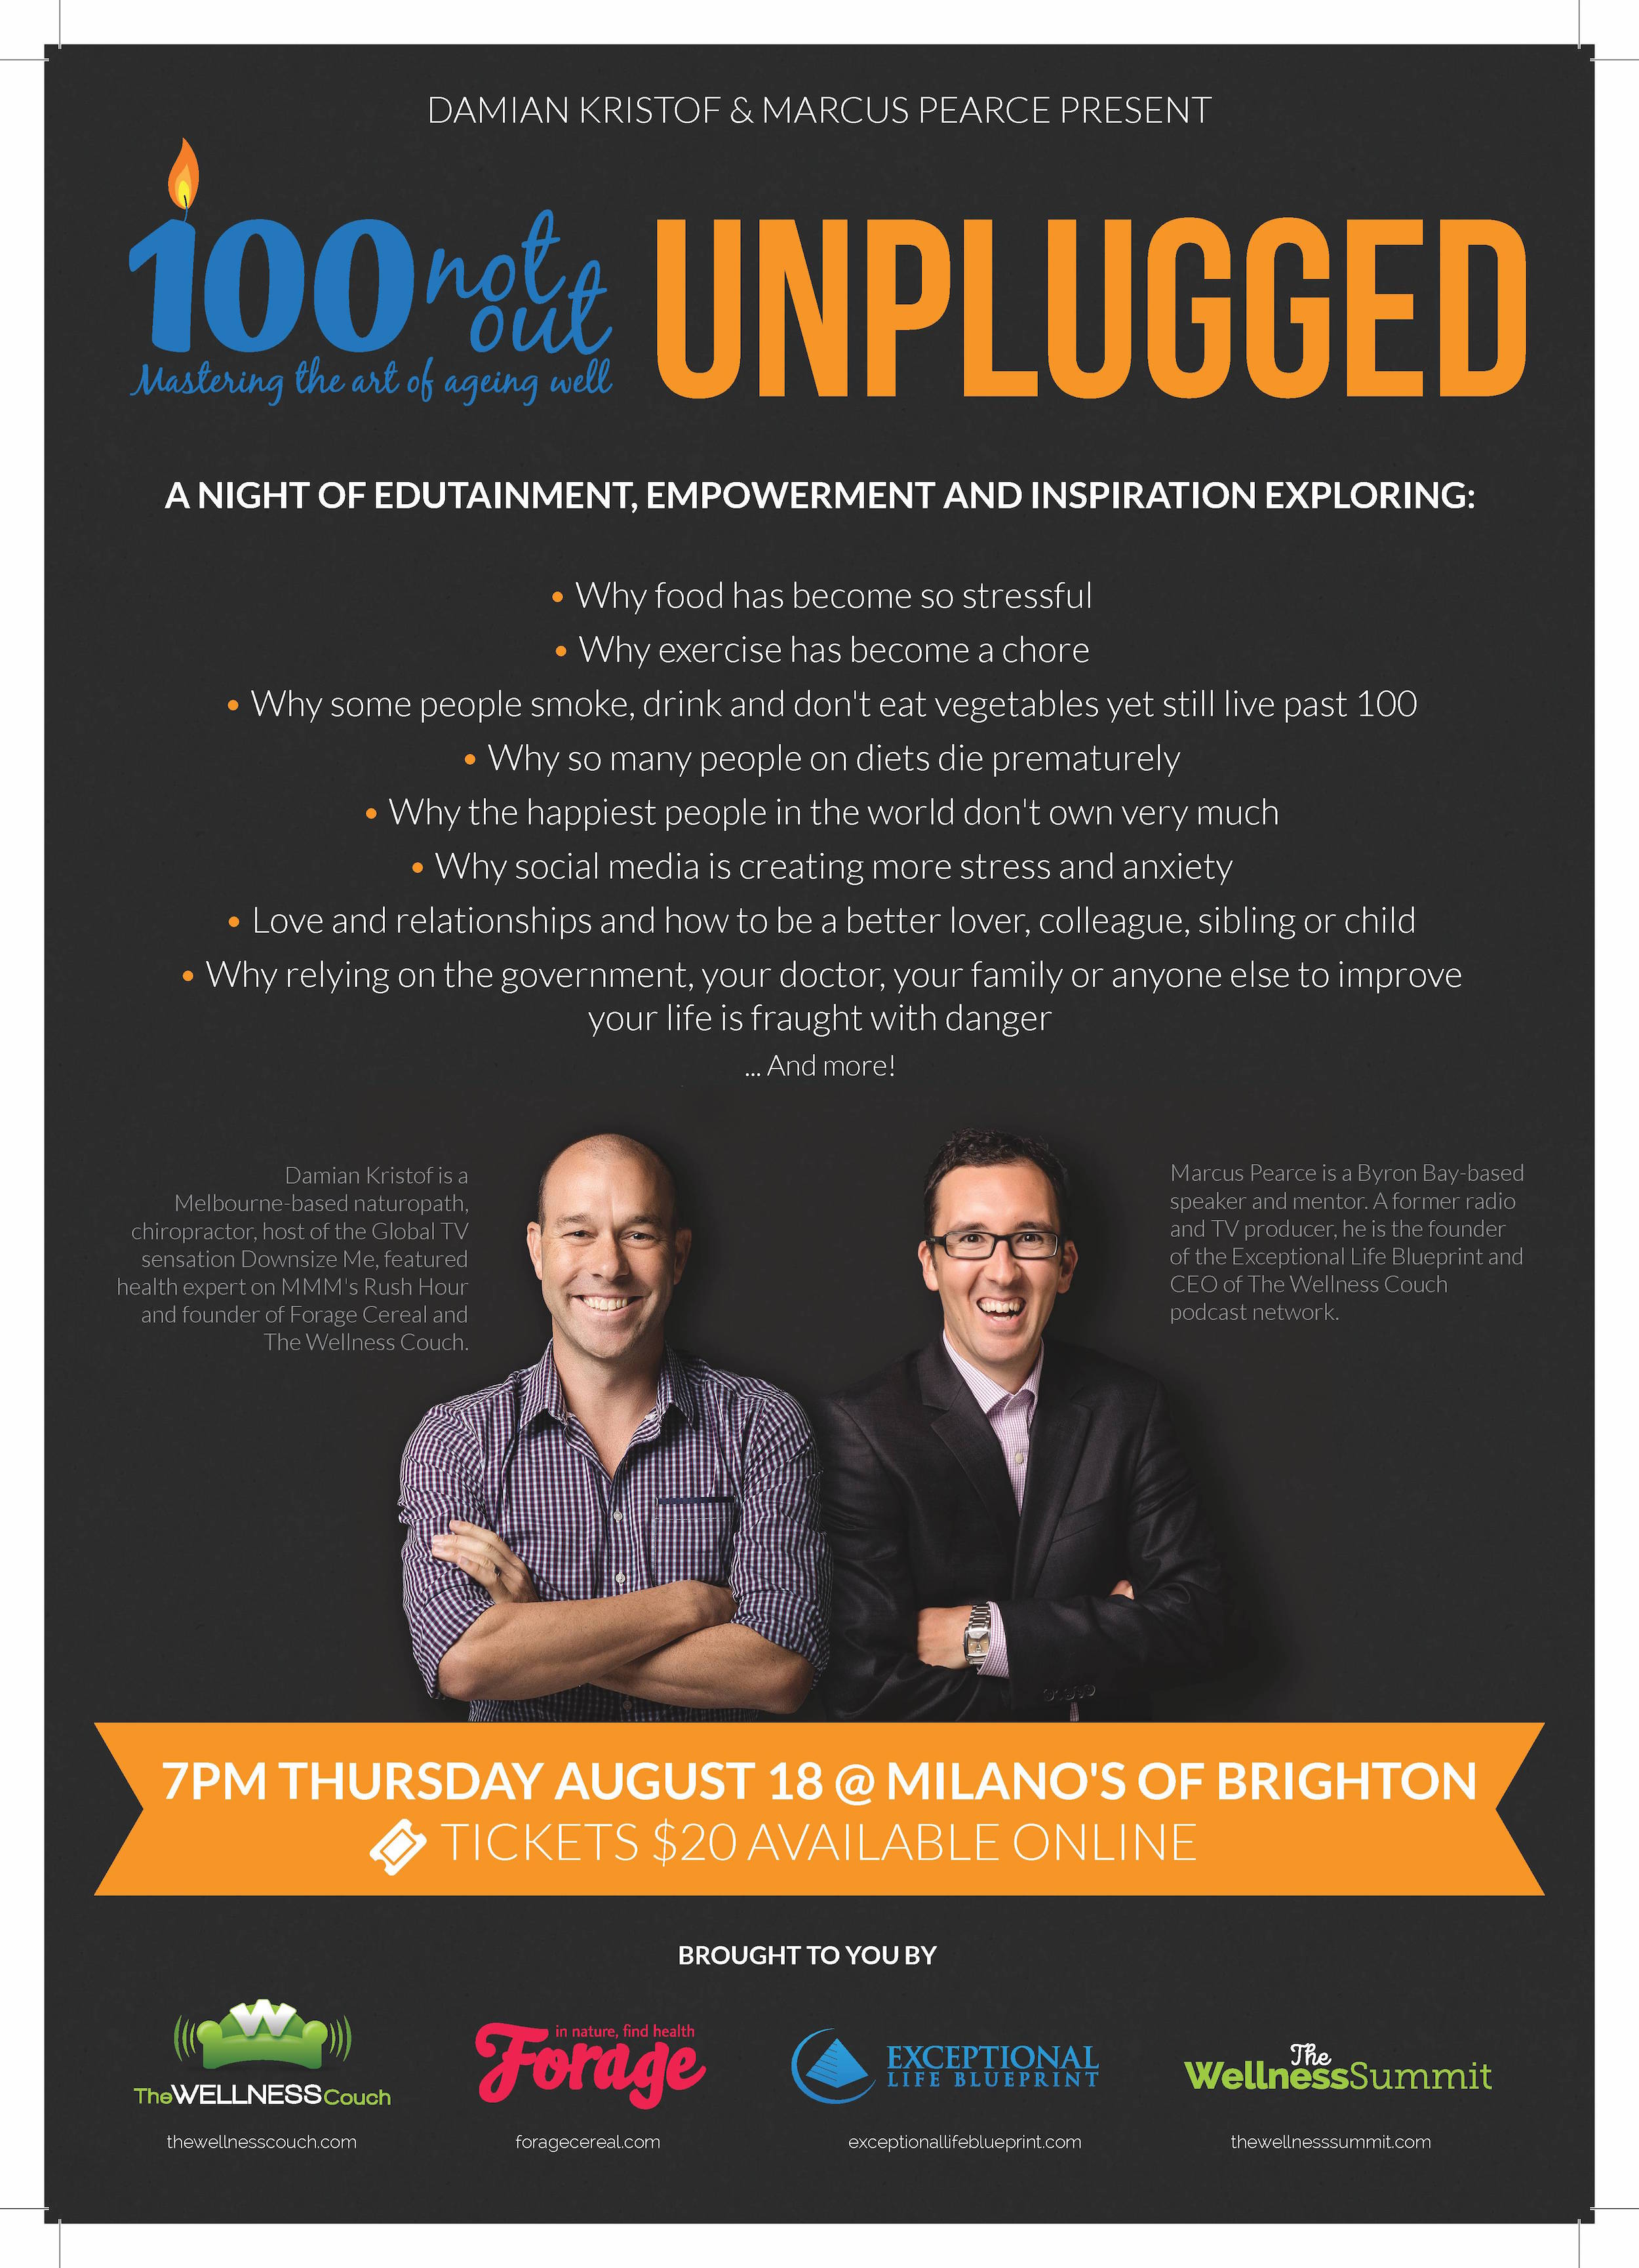 100 Not Out Unplugged Poster